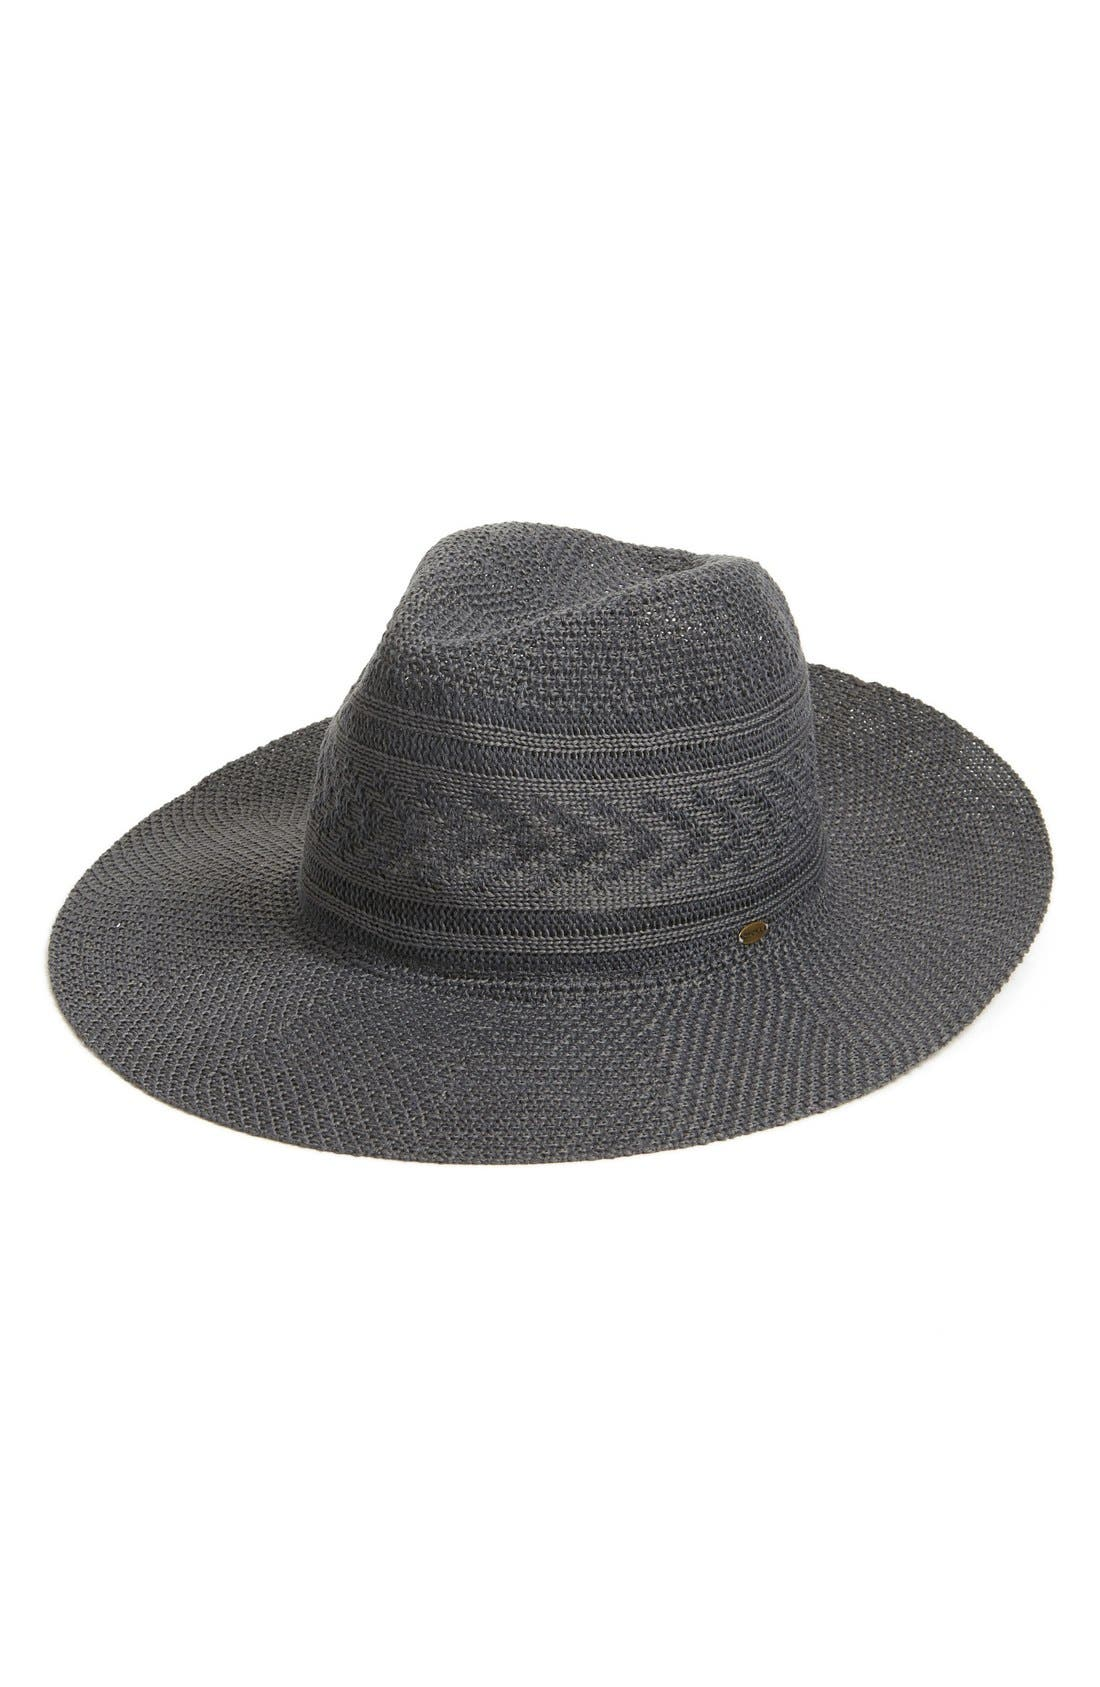 Alternate Image 1 Selected - O'Neill 'Bianca' Panama Hat